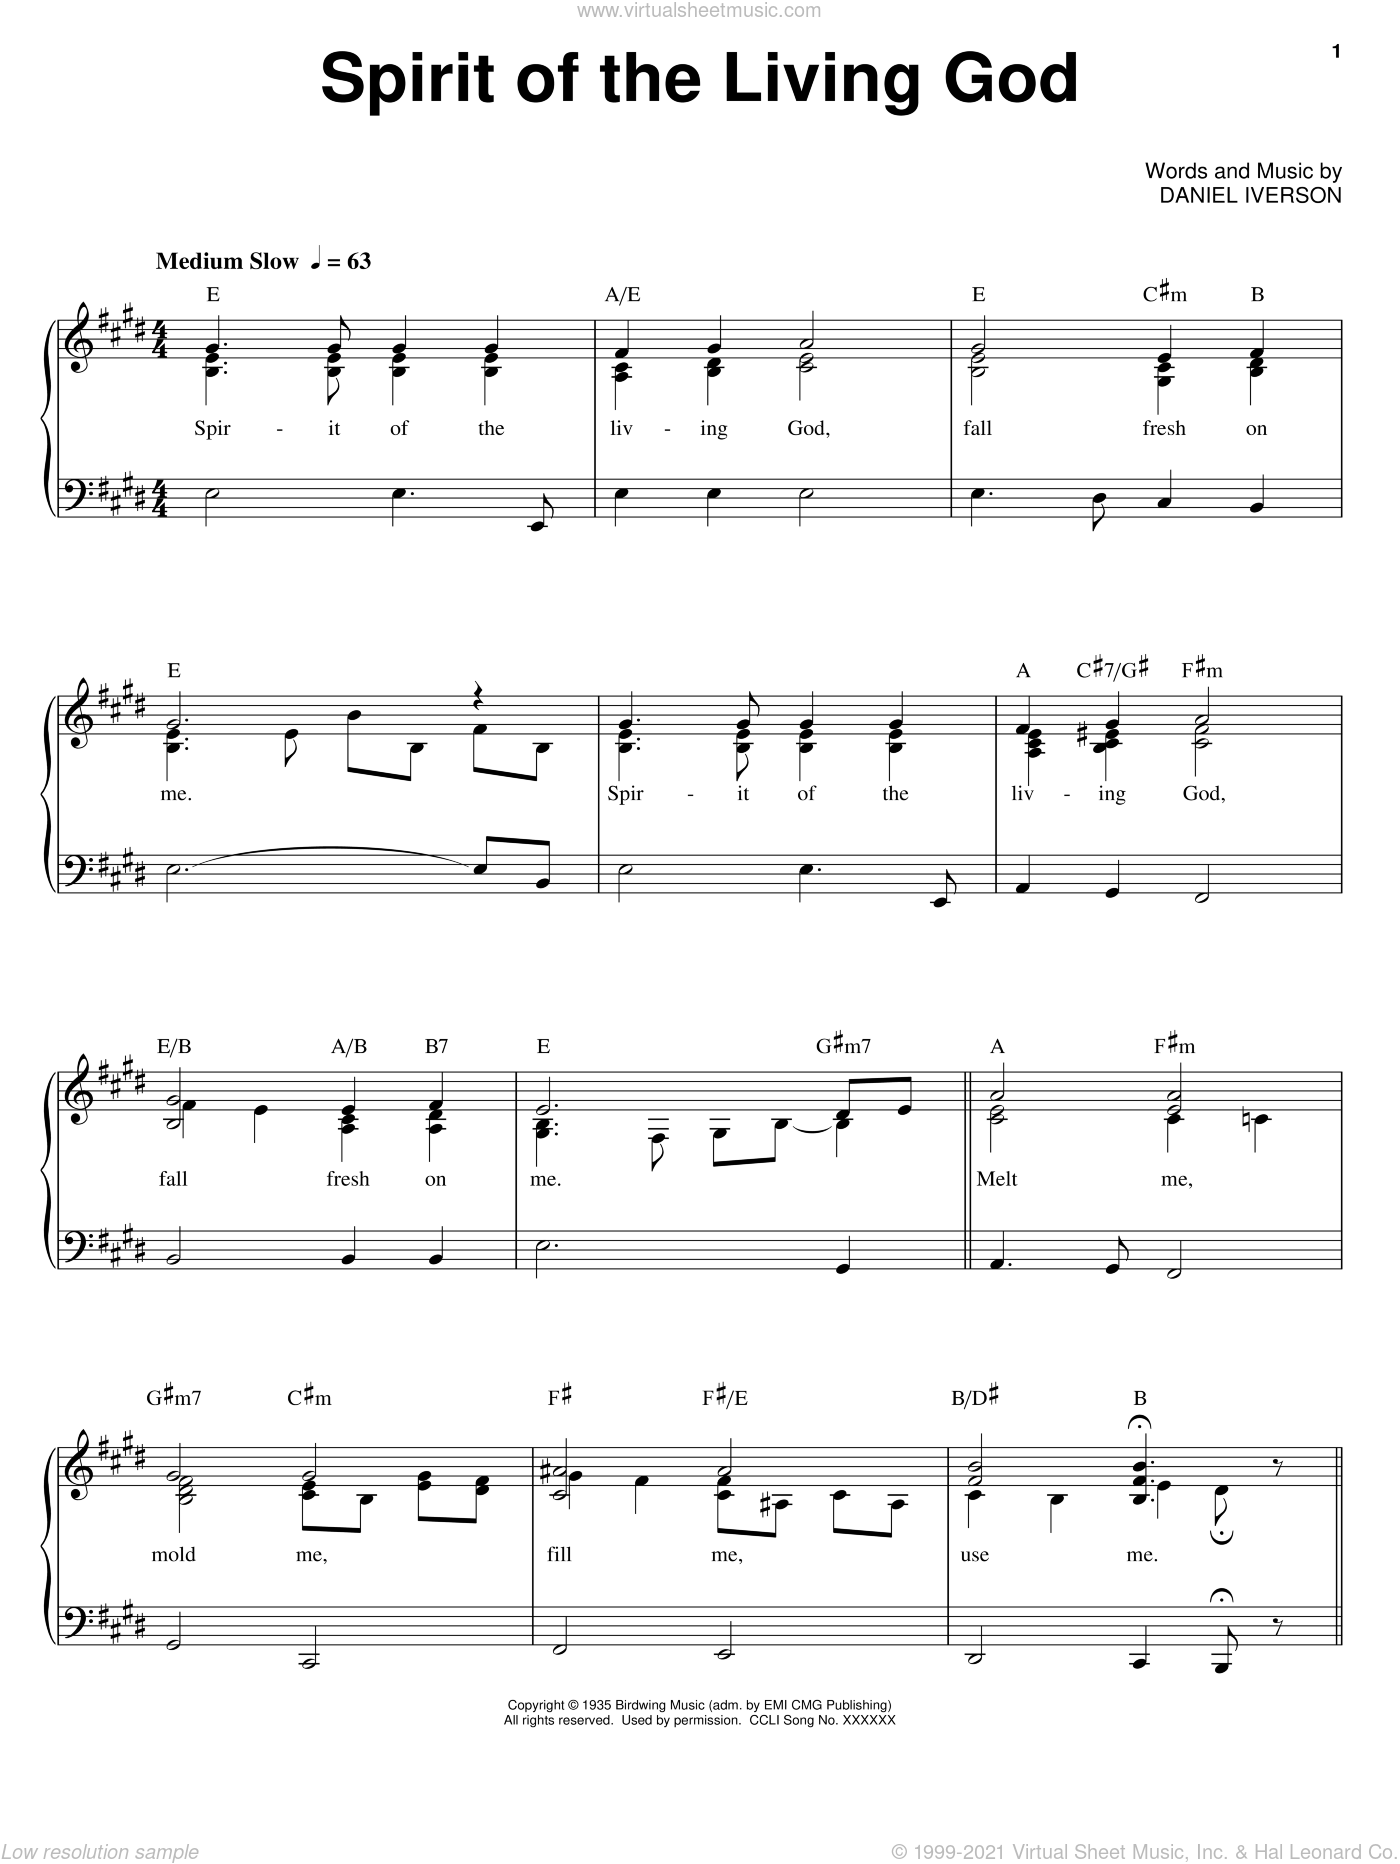 Spirit Of The Living God sheet music for voice, piano or guitar by Daniel Iverson. Score Image Preview.